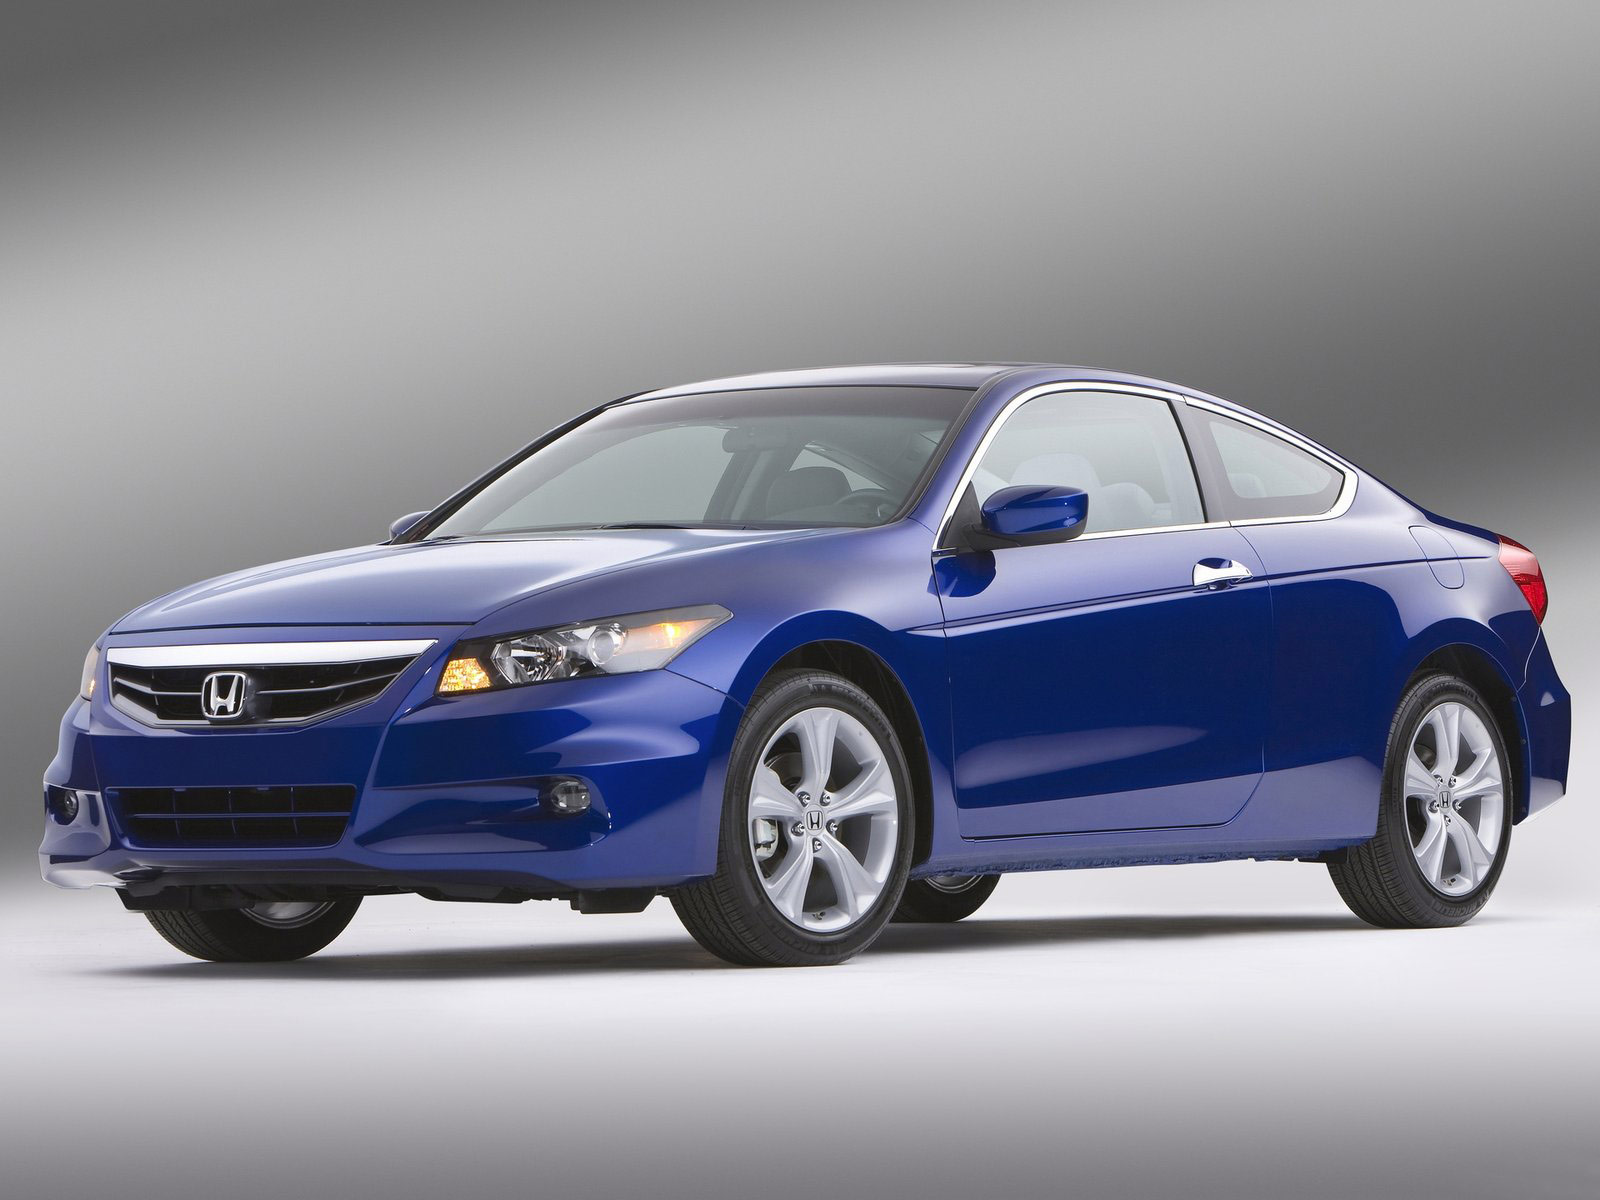 2011 honda accord coupe photos japanese car. Black Bedroom Furniture Sets. Home Design Ideas